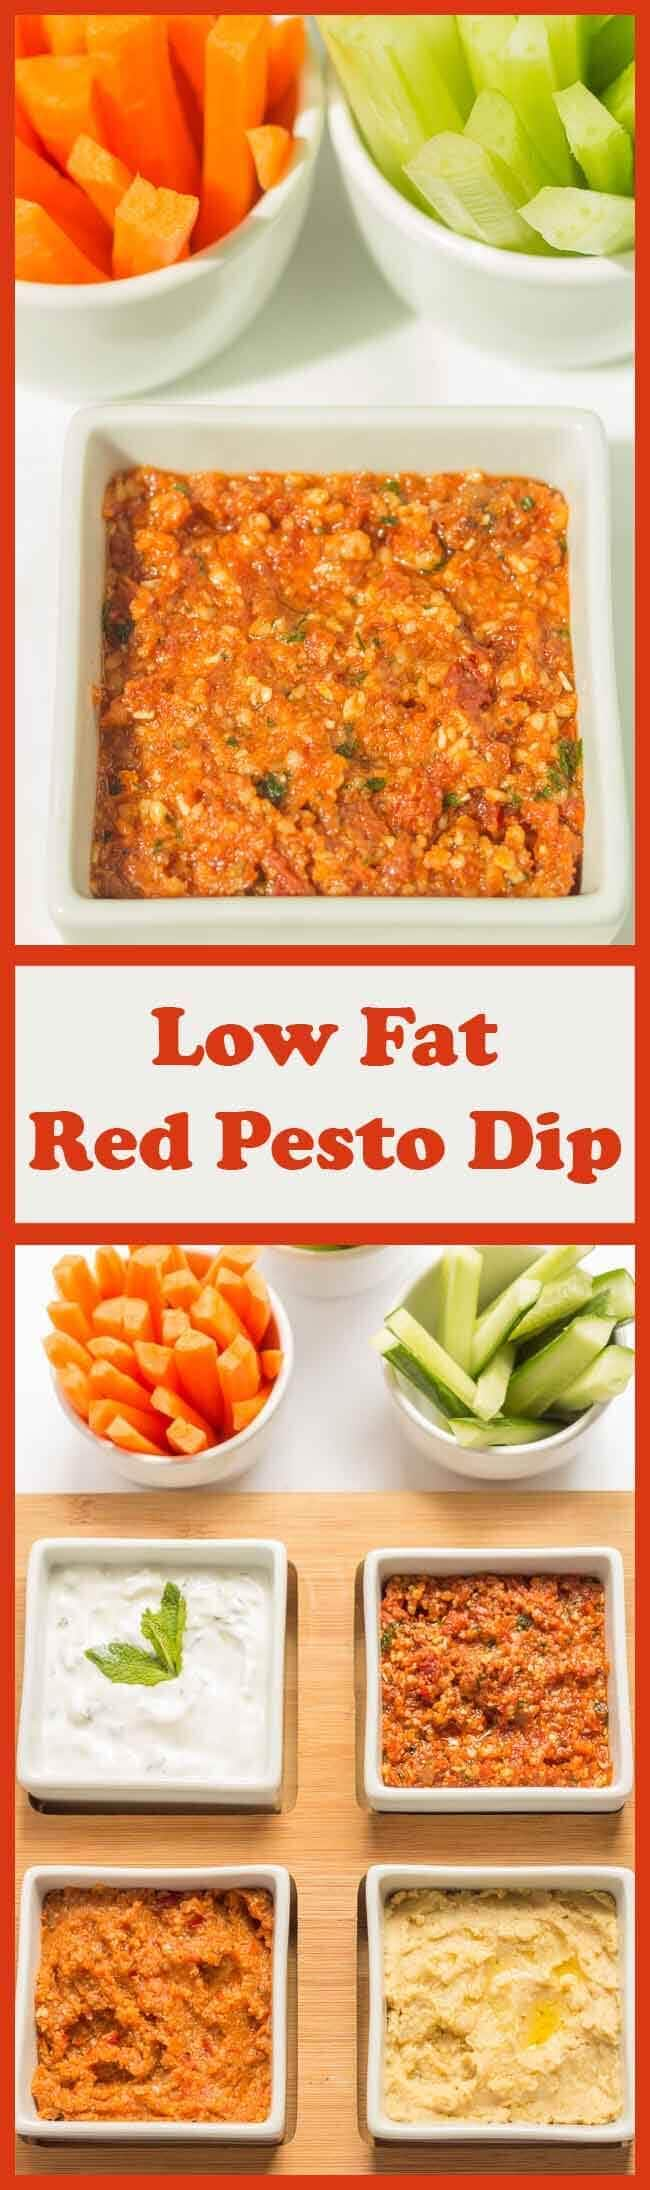 You'll love this healthy low fat red pesto dip recipe. It's so quick and easy to make and ideal to share with friends. Delicious Mediterranean flavours will remind you of sun drenched days, no matter what time of year you're eating this and whatever the weather!